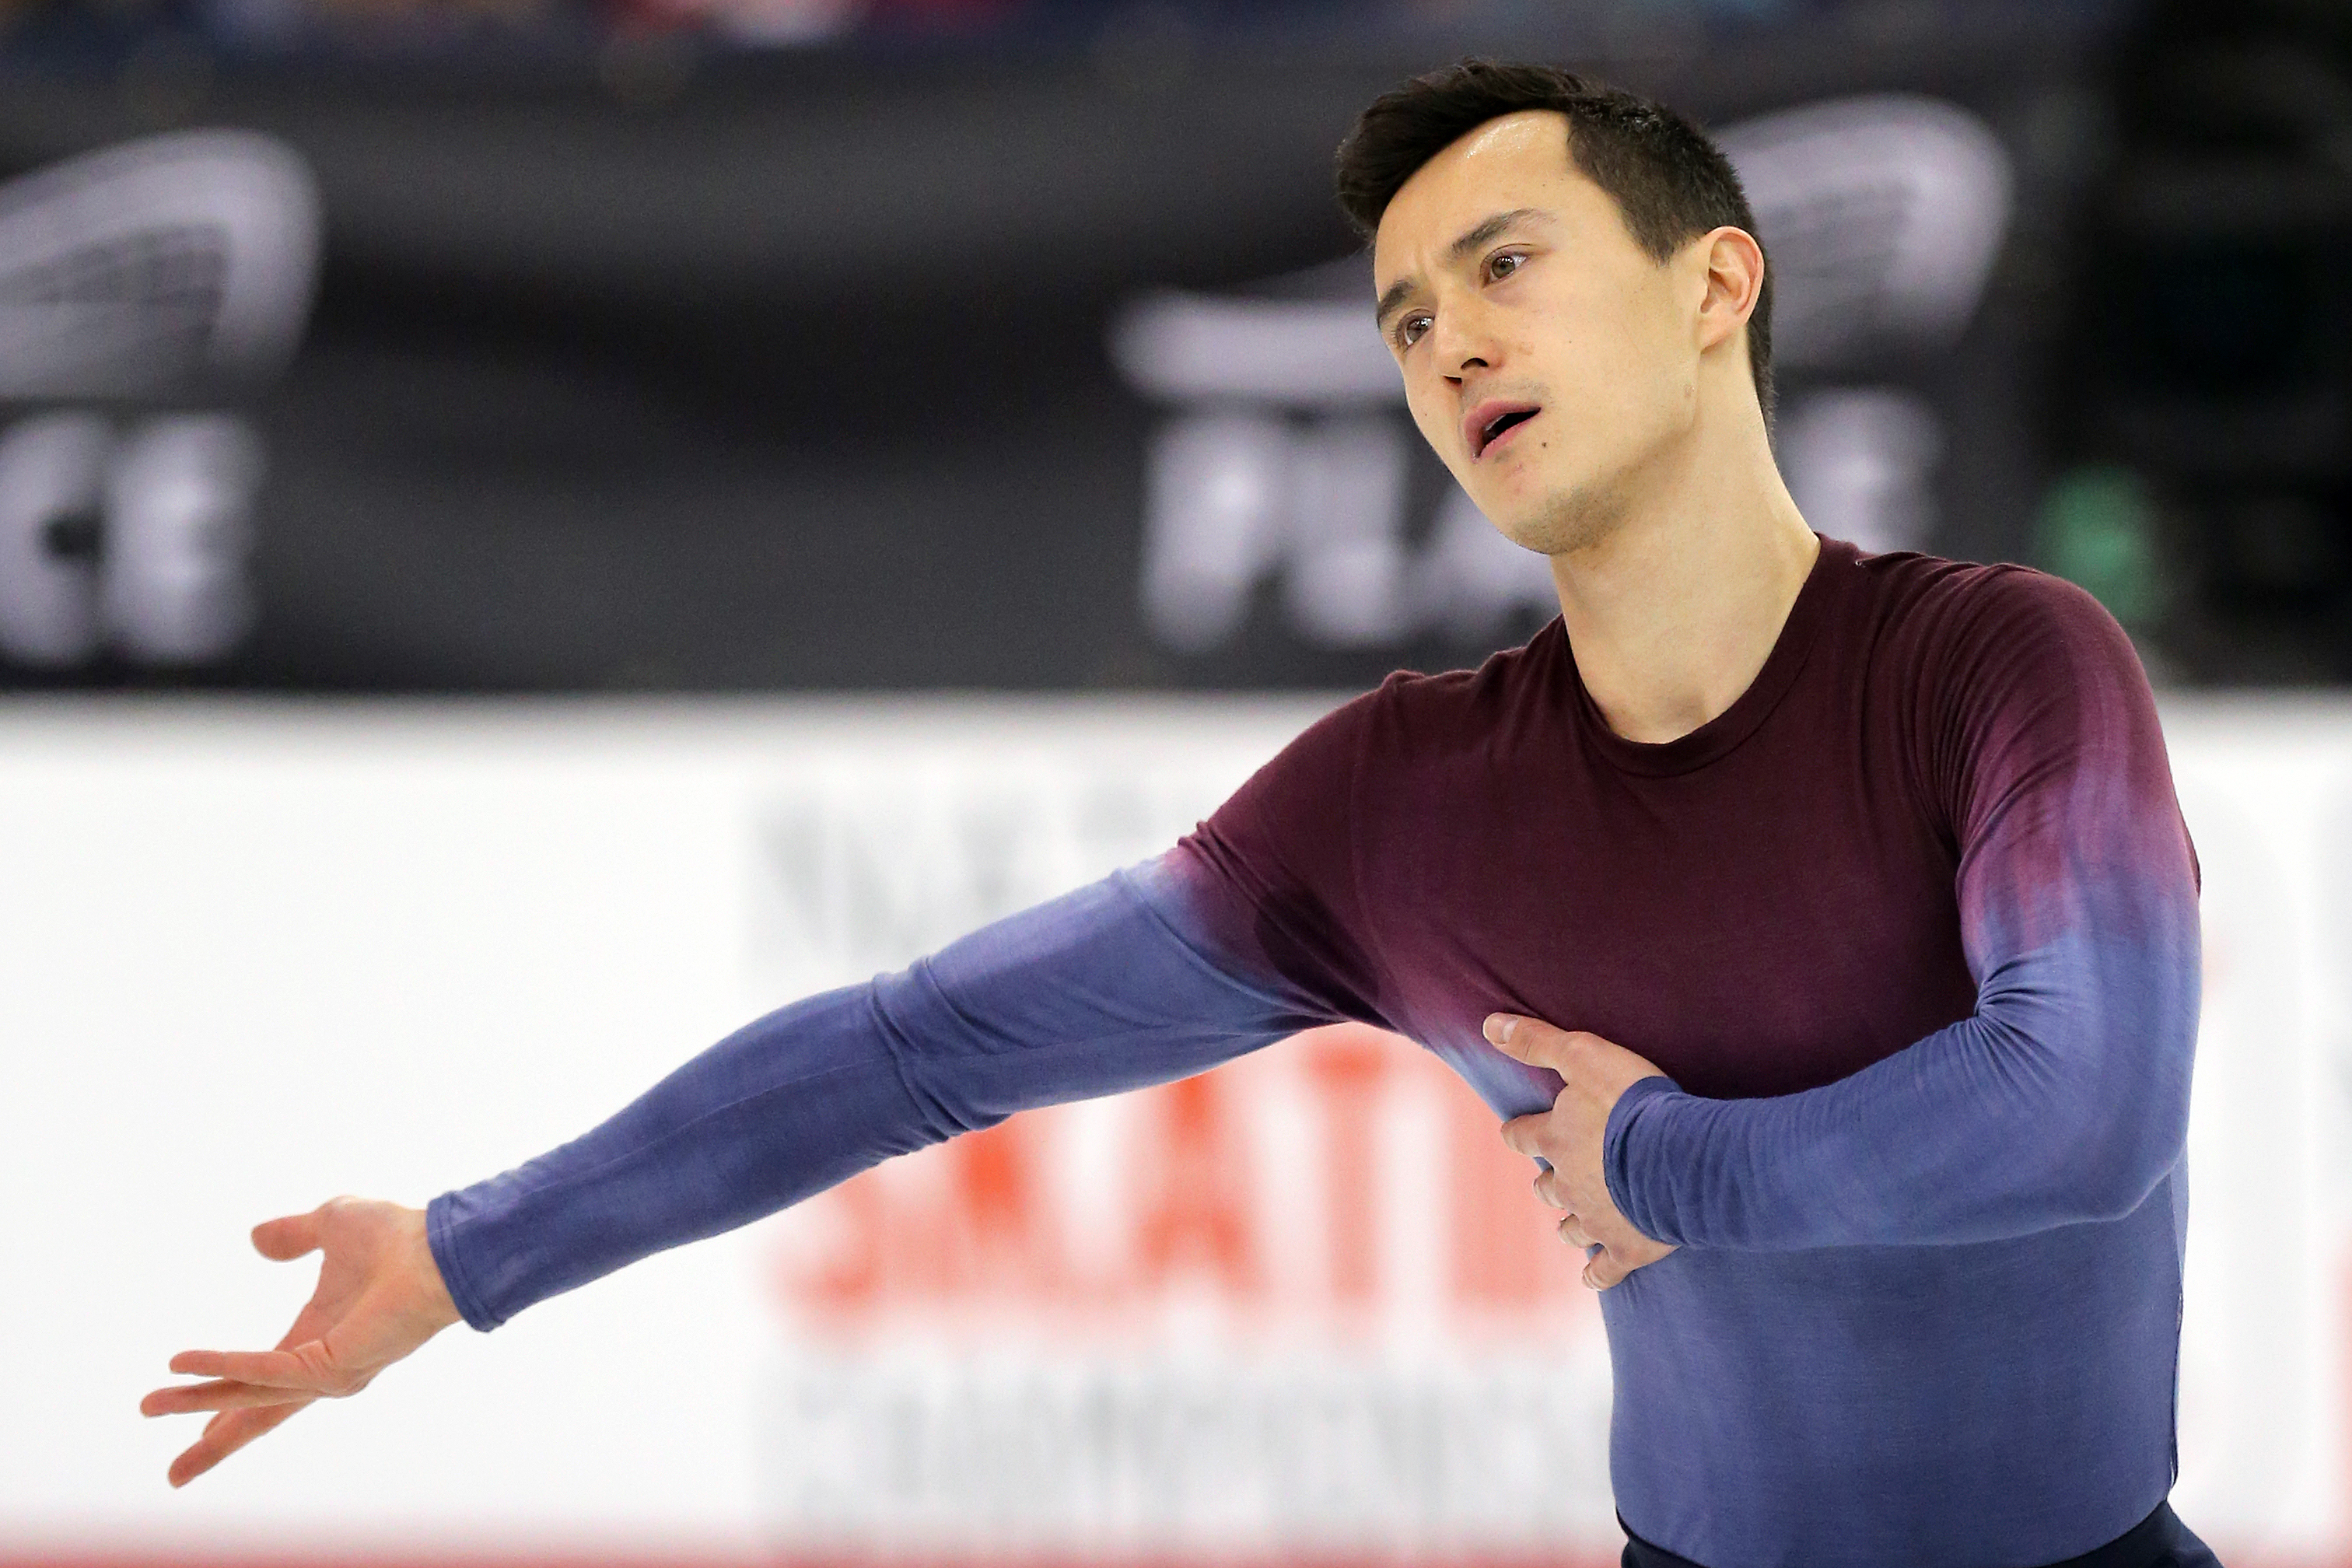 Patrick Chan competes in the mens free skate at the Canadian Tire National Skating Championships, January, 21, 2017 PHOTO: Greg Kolz